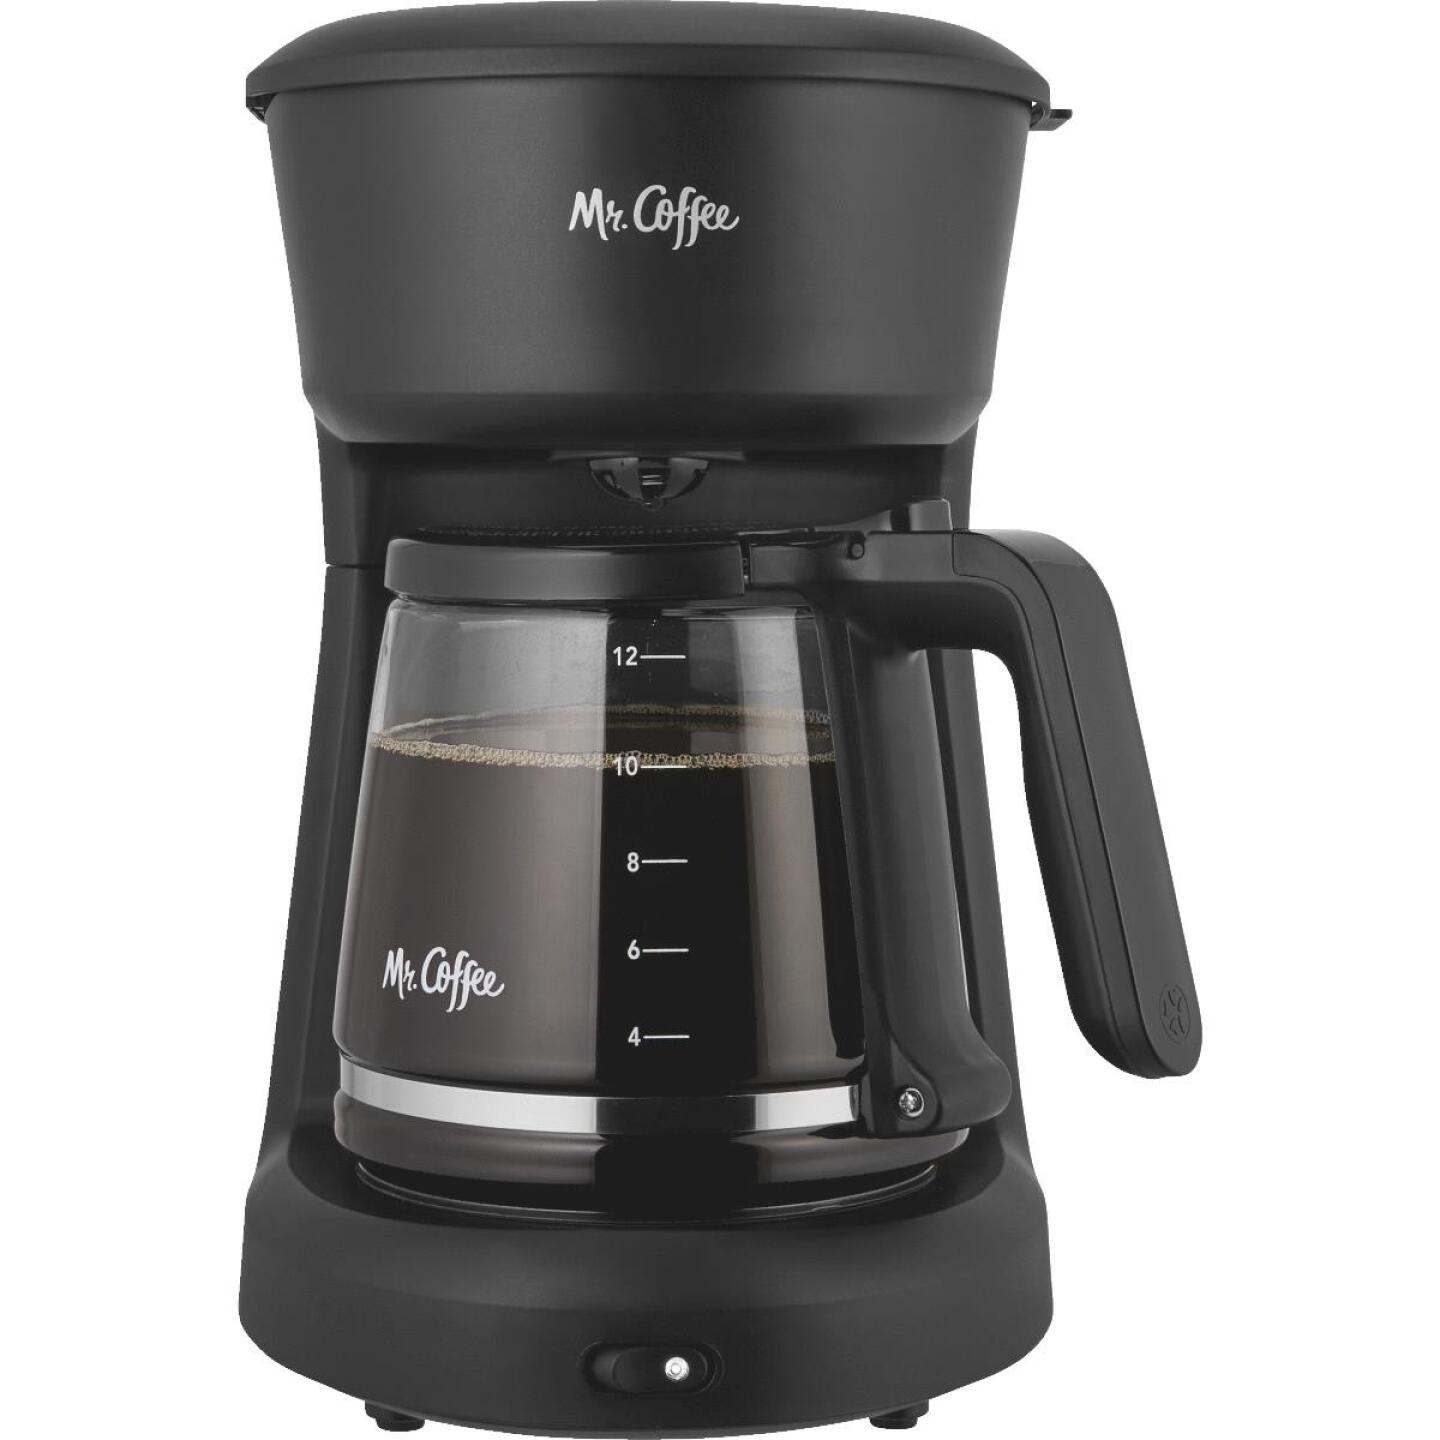 Mr Coffee 12 Cup Switch Black Coffee Maker Image 1